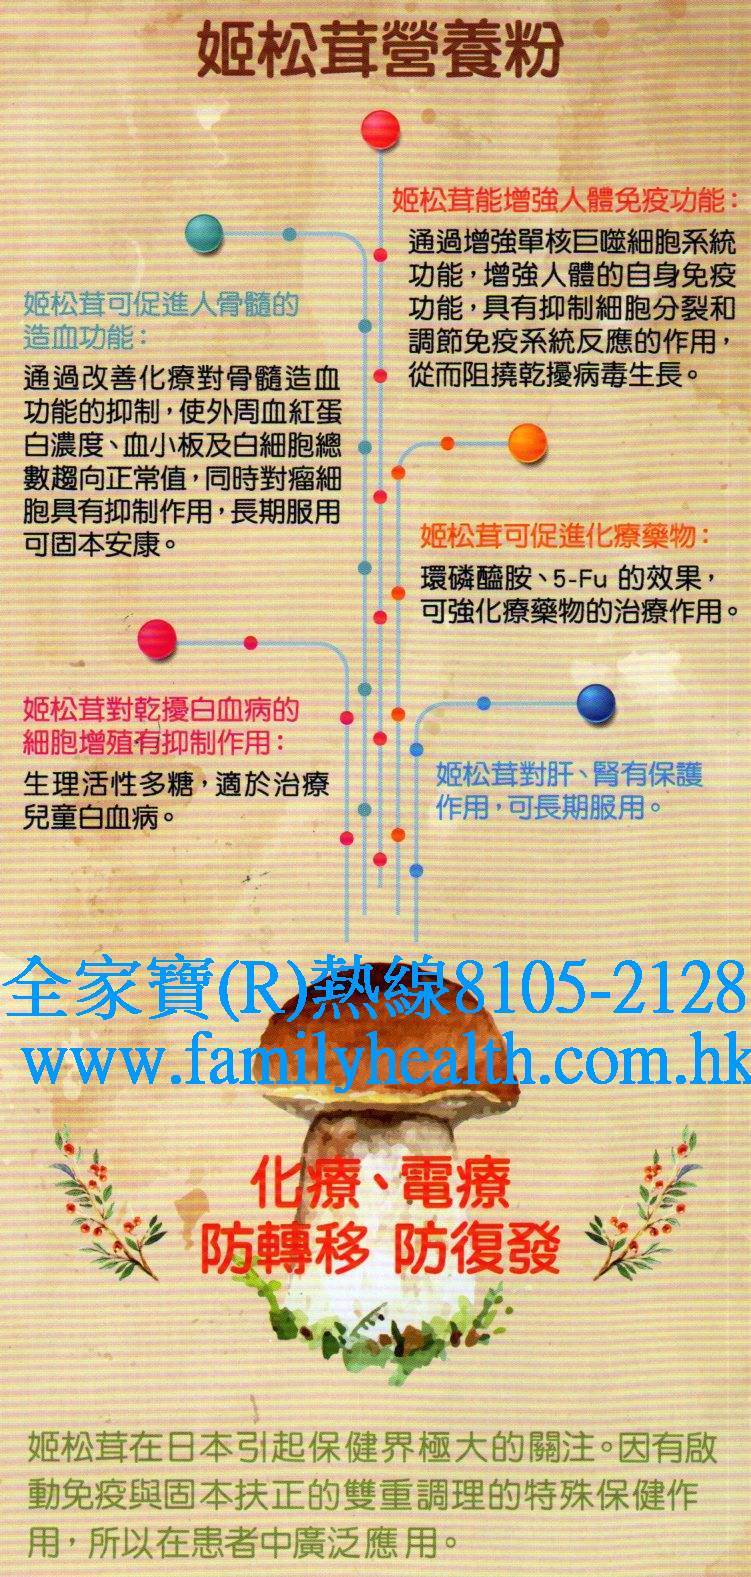 http://www.familyhealth.com.hk/files/full/1037_0.jpg